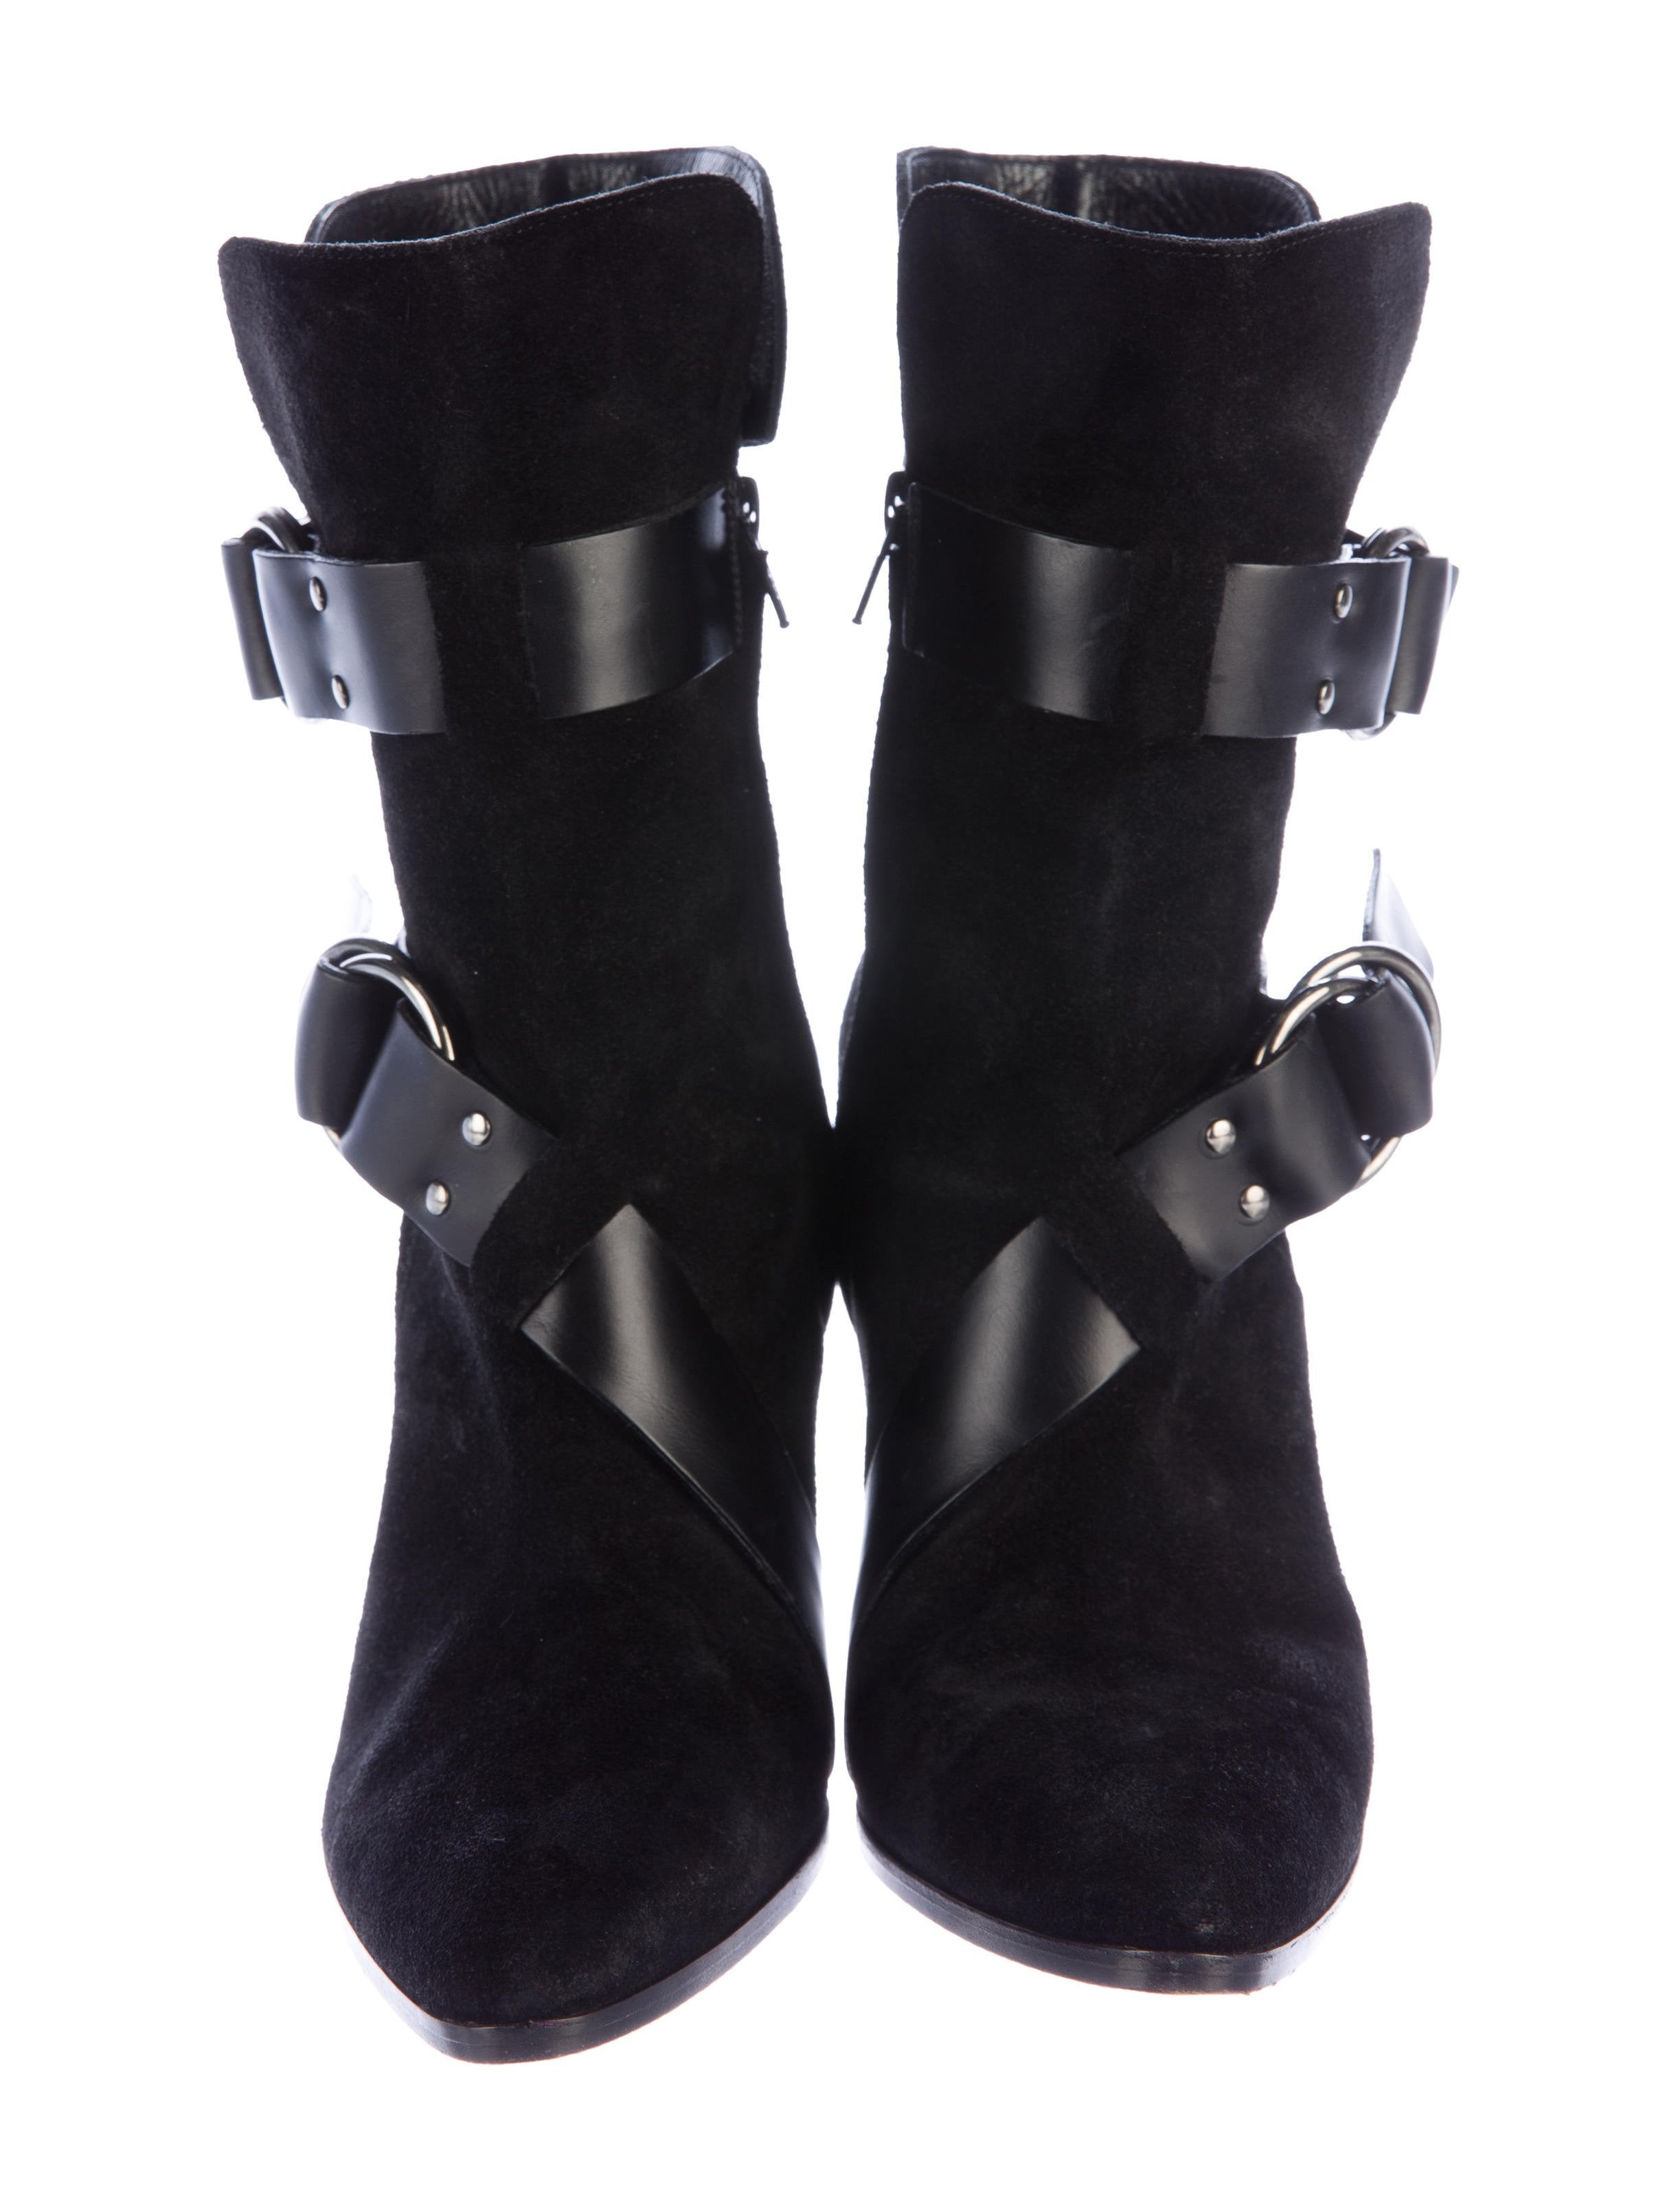 givenchy suede wedge boots shoes giv42035 the realreal